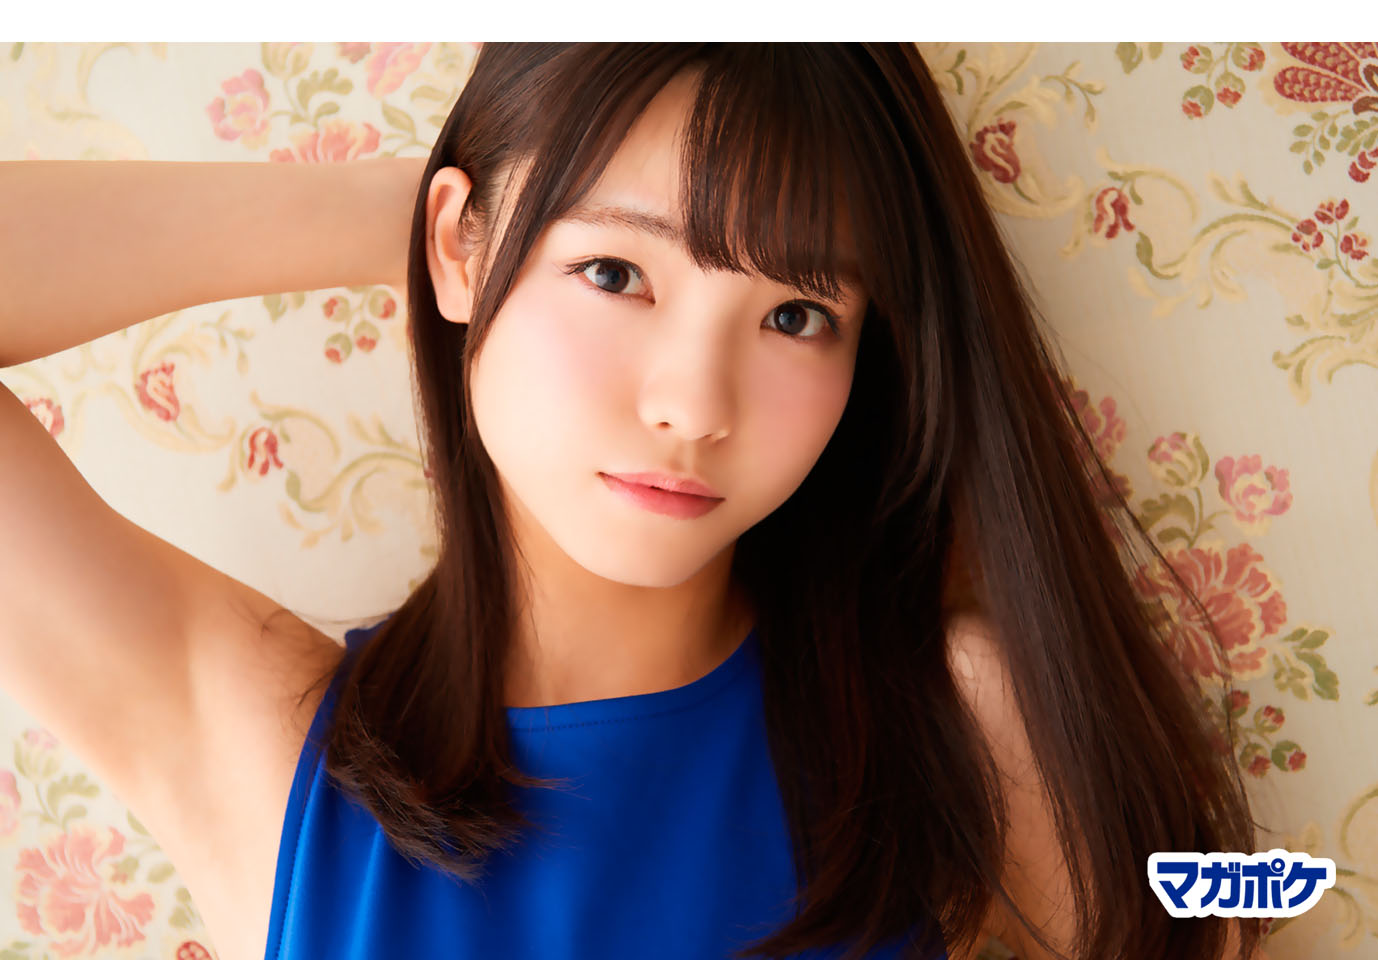 Takahashi Ayane 髙橋彩音, AKB48 Team8 x Weekly Maga Cover Competition